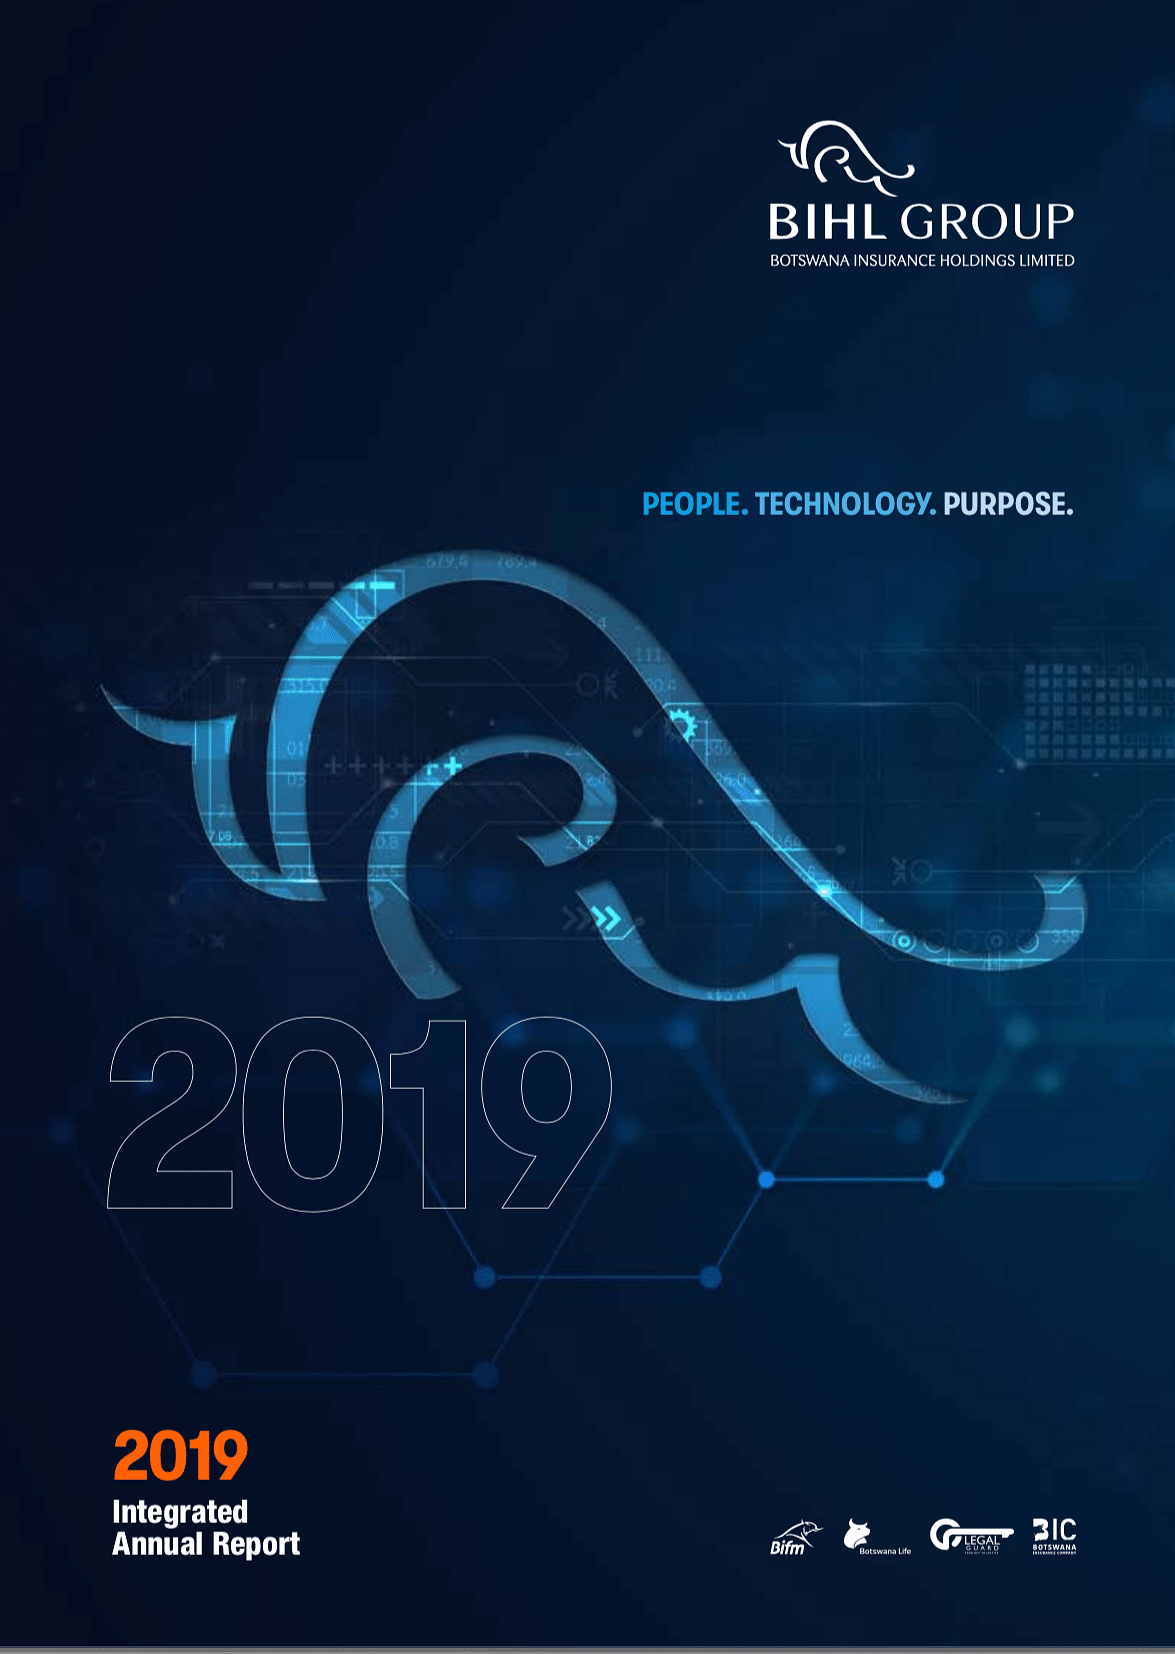 The BIHL Group Annual Report 2019 cover